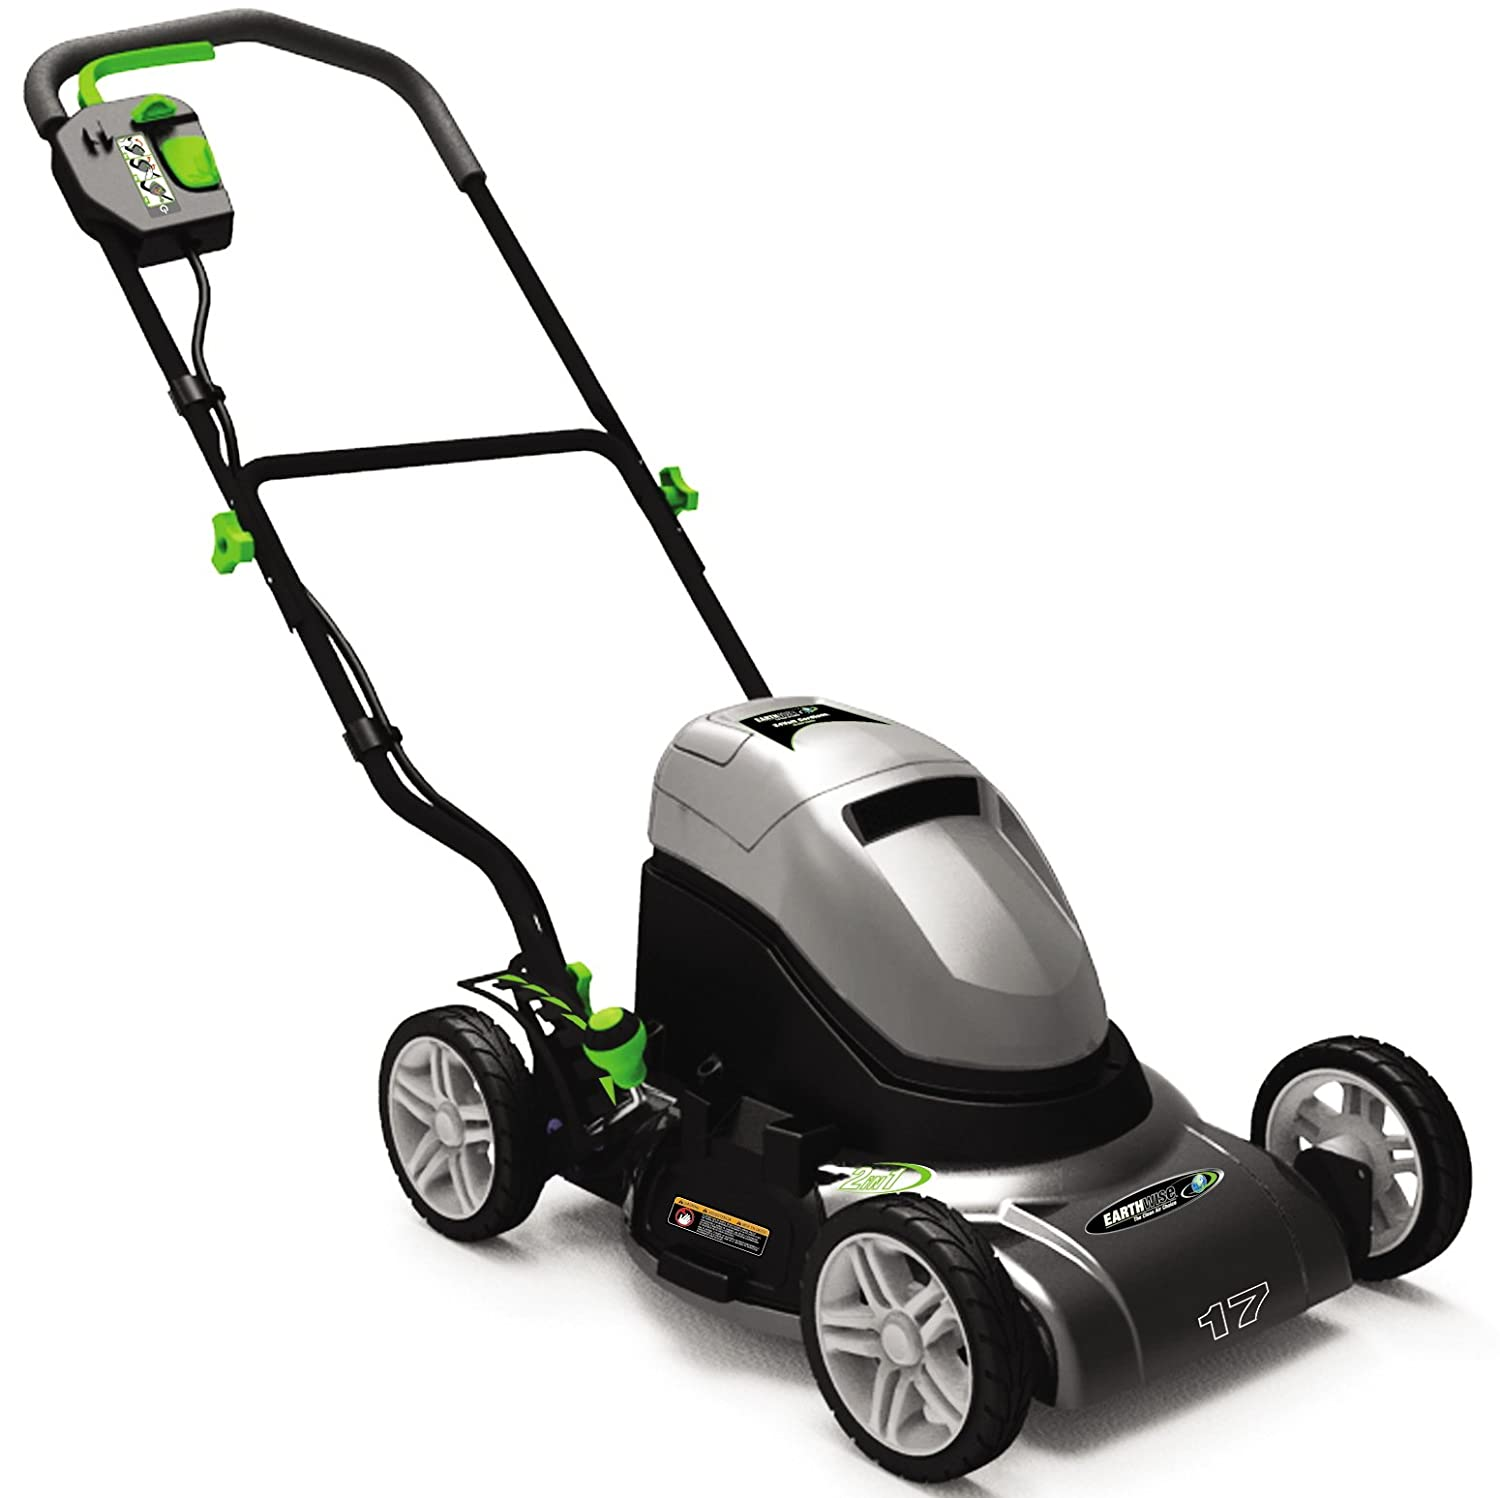 Cordless Lawn Mower : Best review top cordless electric lawn mowers july